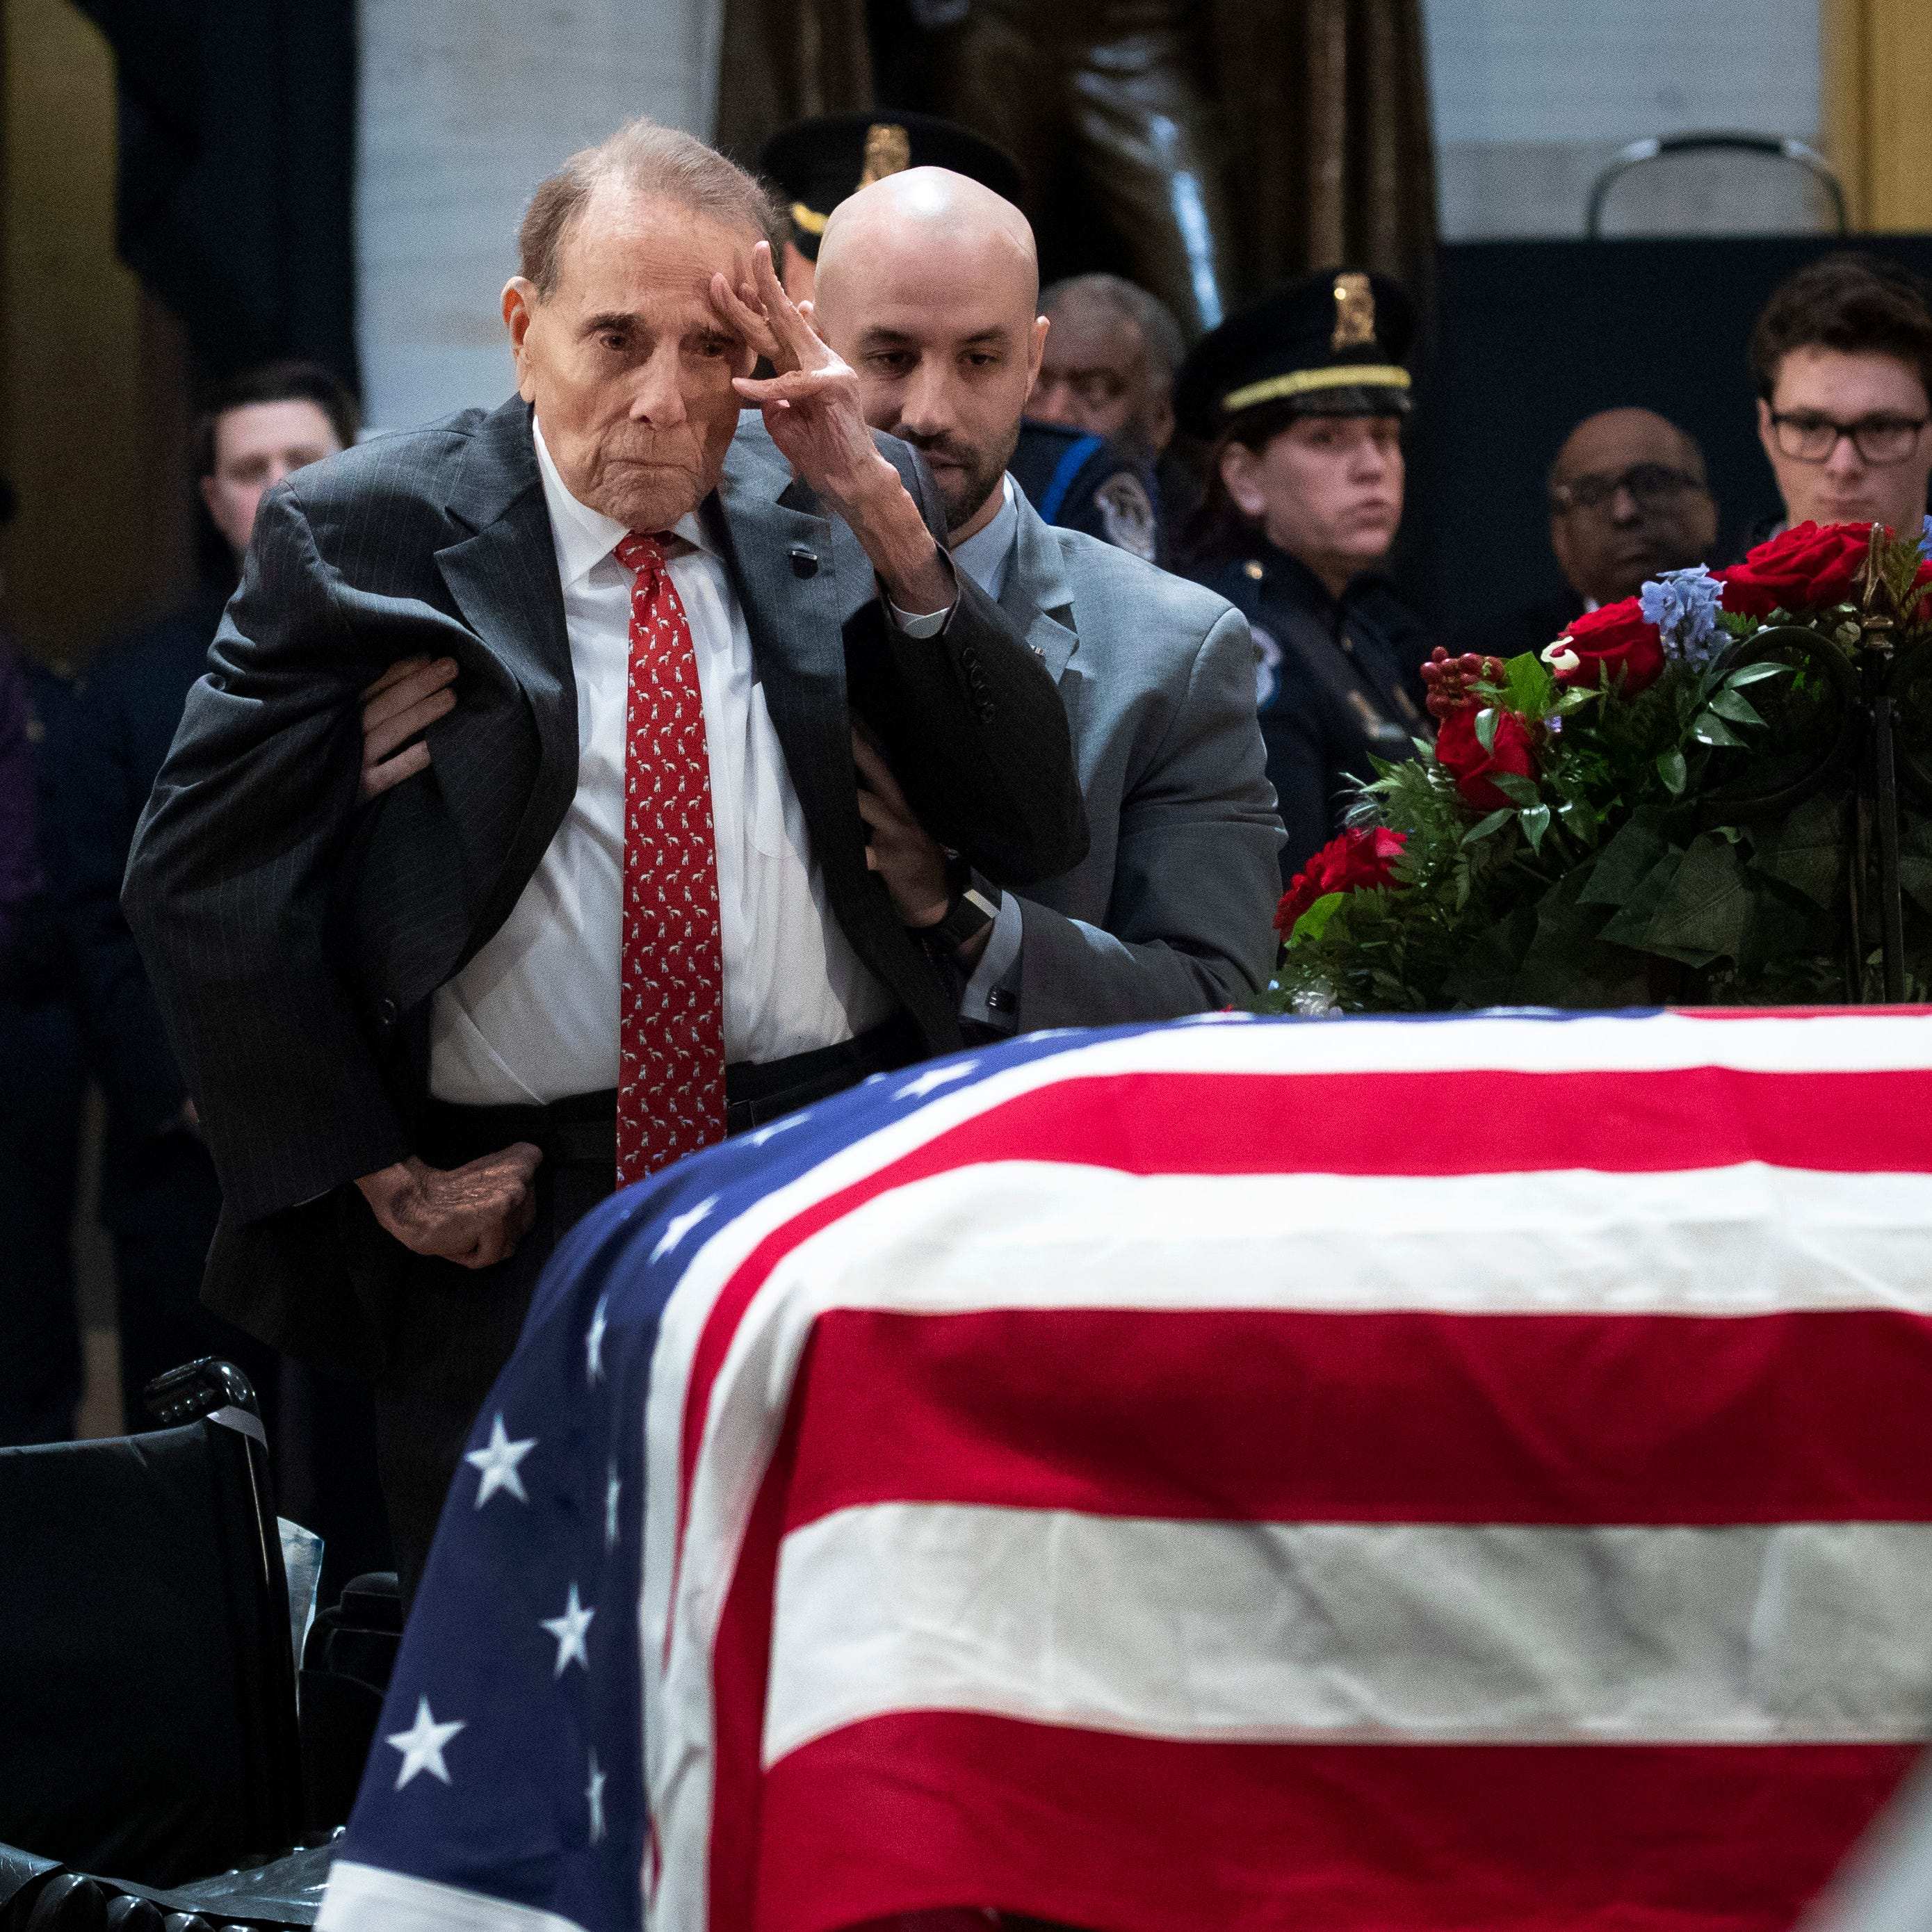 Opinion: President Bush an example to us all